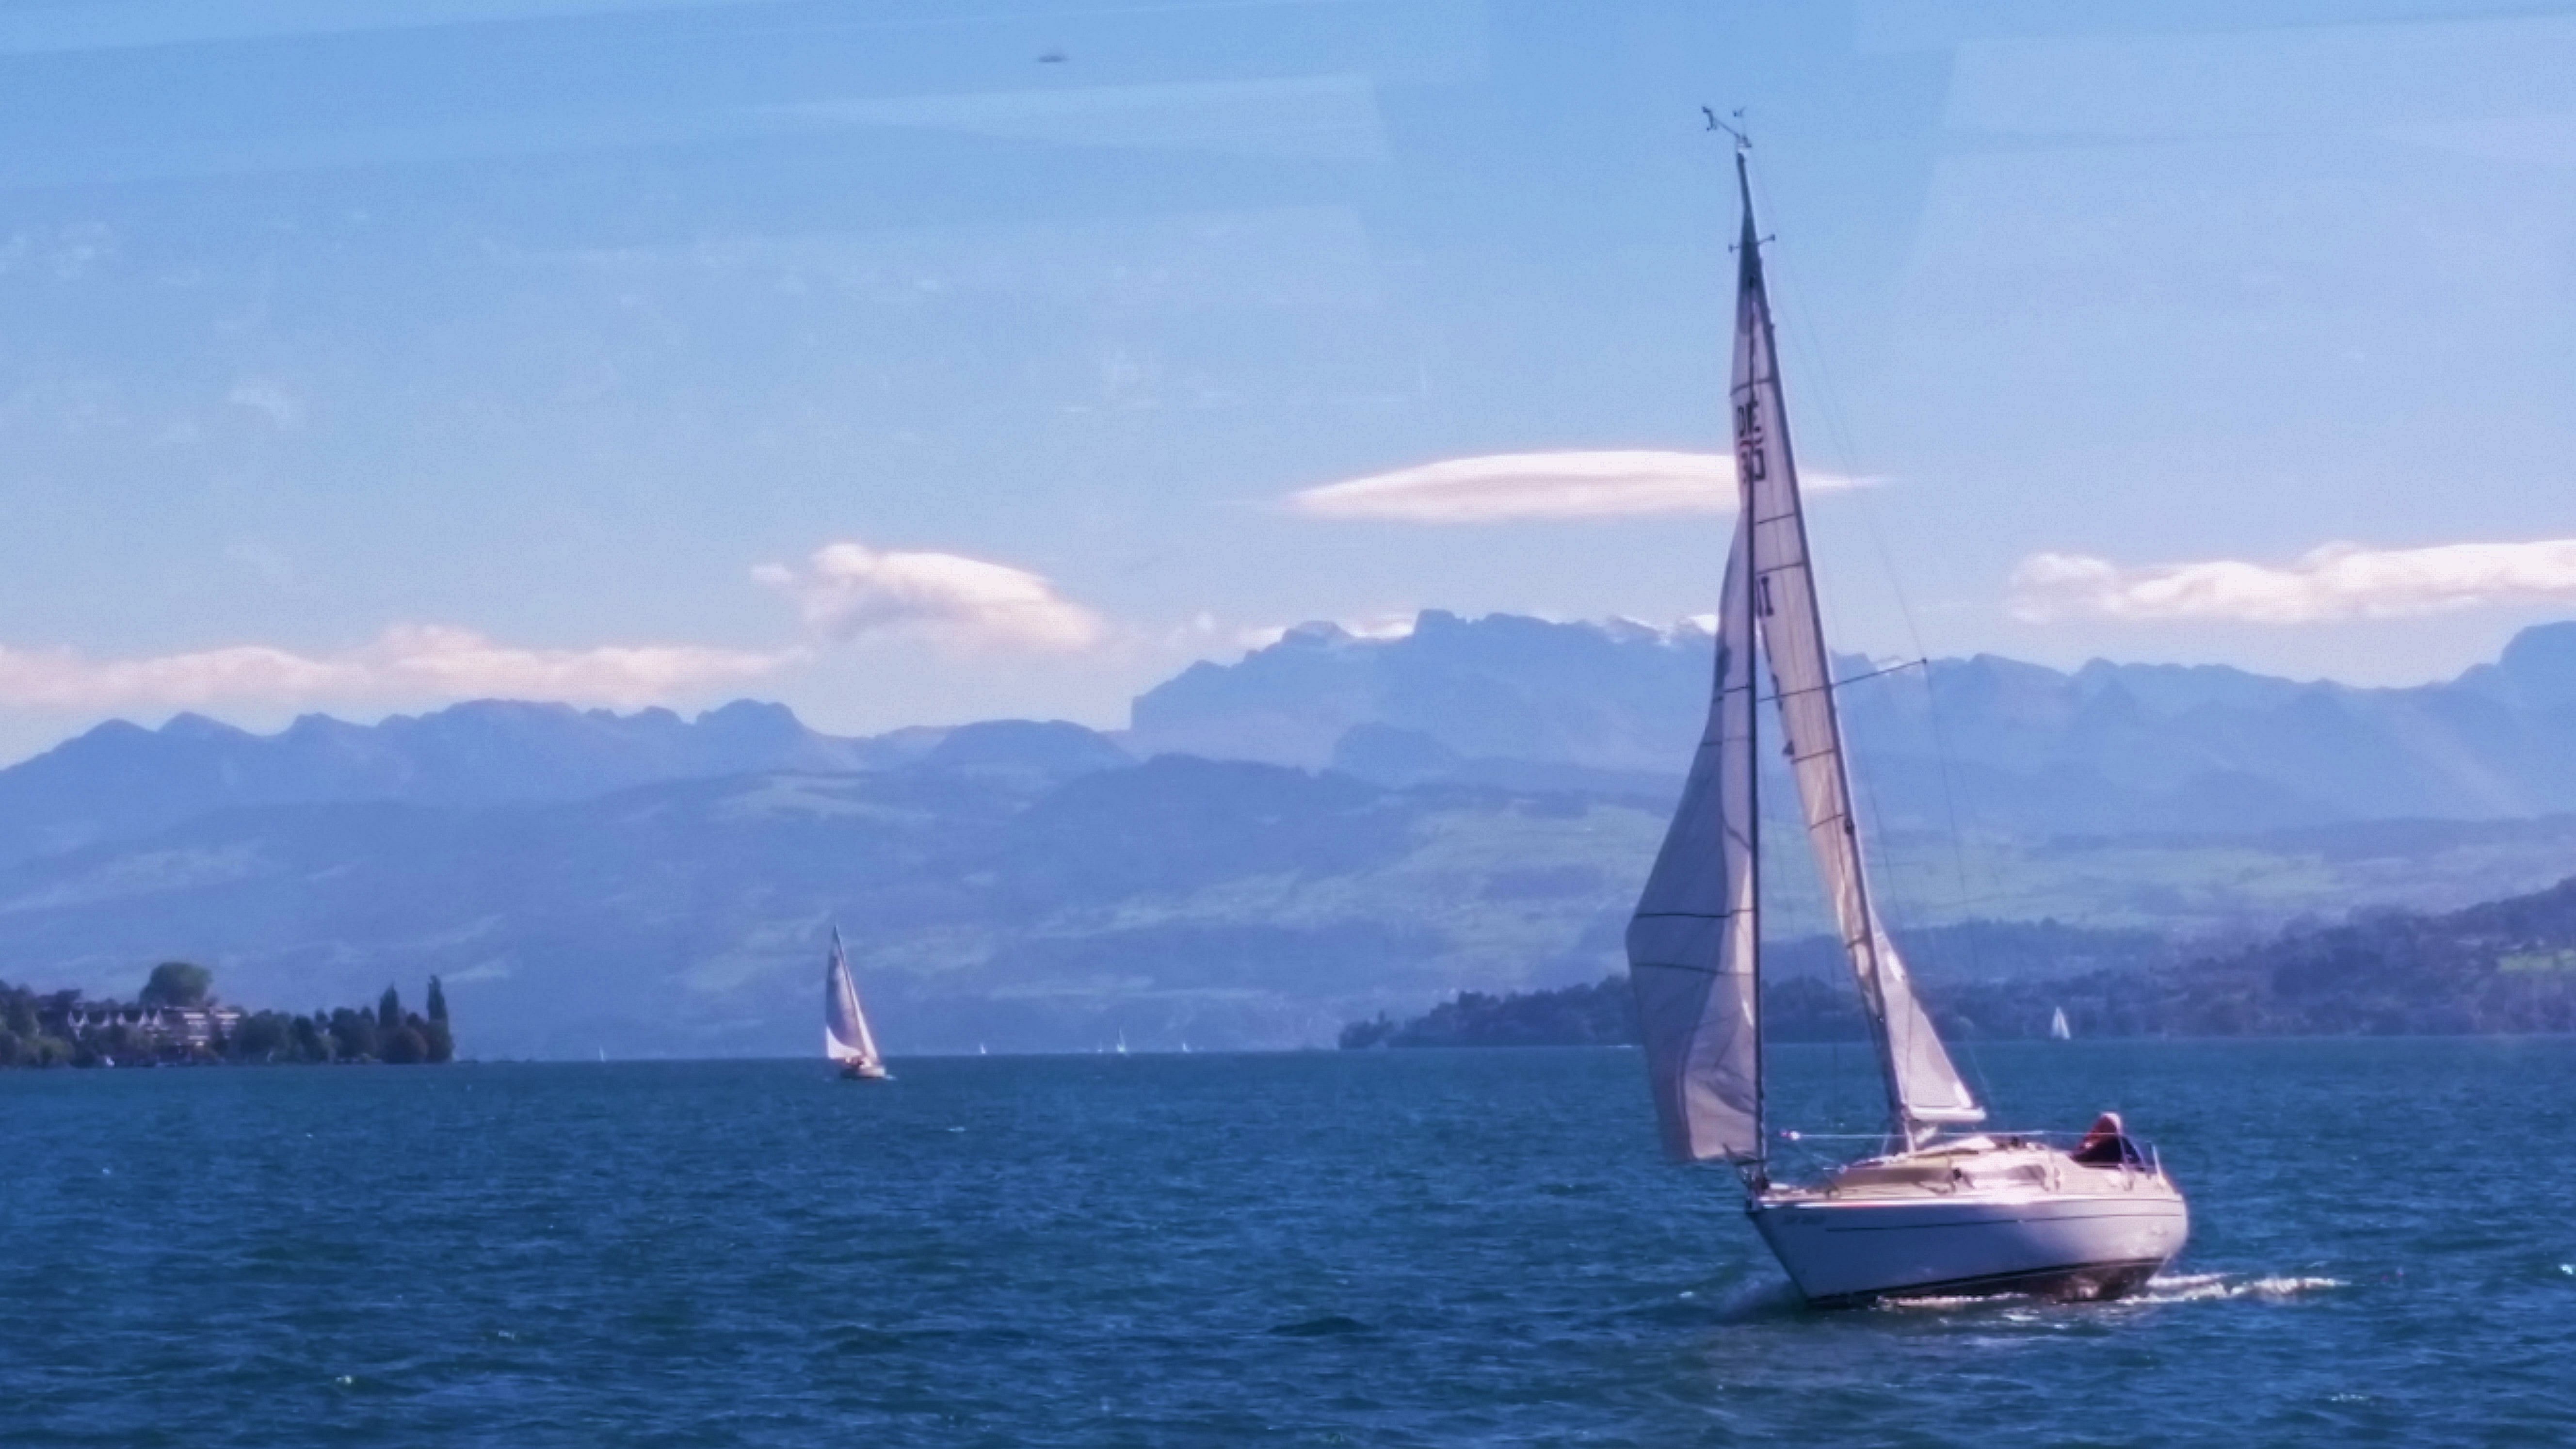 Sailboats on Lake Zurich